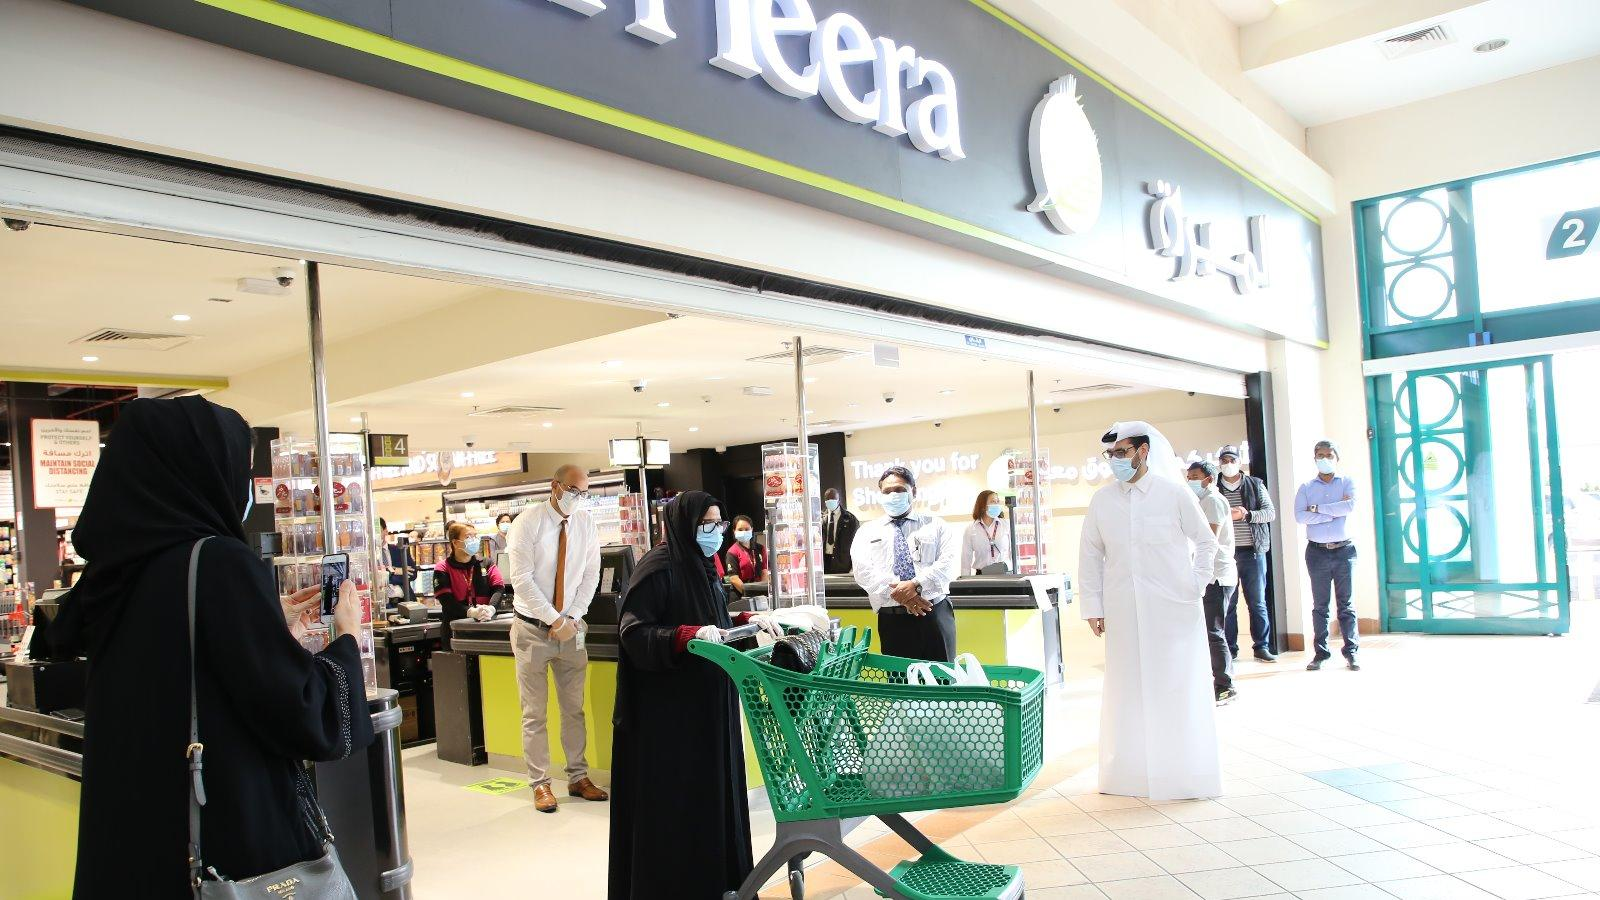 Al Meera opens doors of its latest branch at The Mall